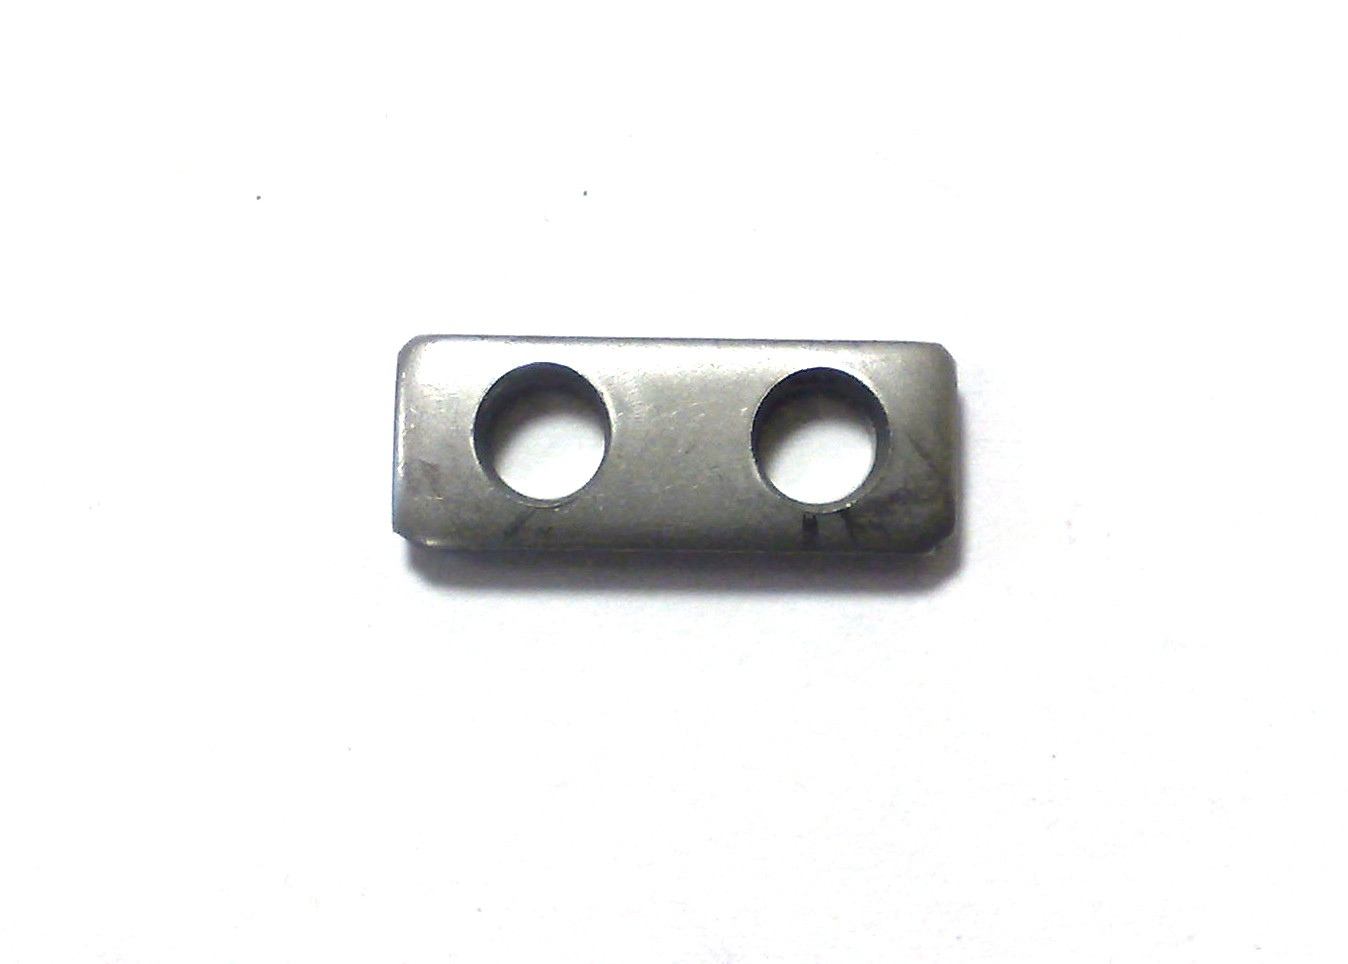 Rickenbacker Part 06119 - 2 Hole Truss Rod Spacer